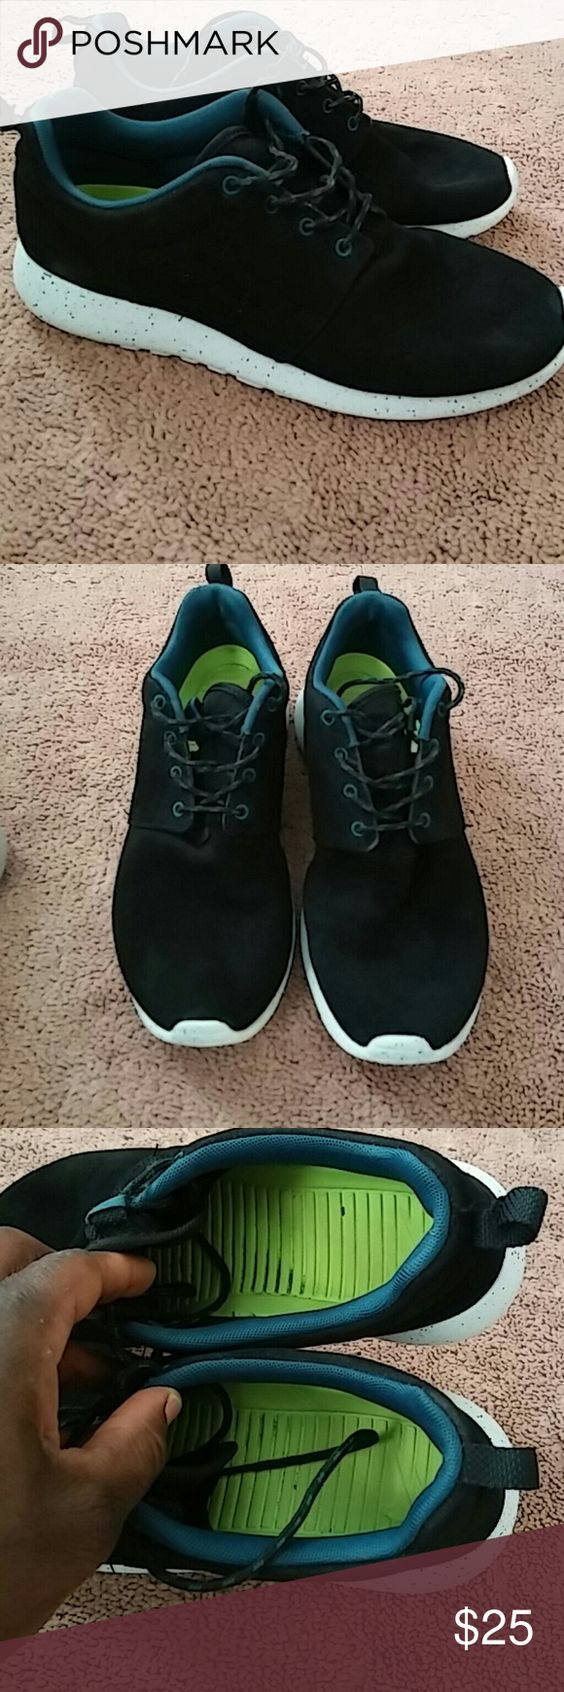 Nike Roshes..size 8 Men and size 10 women This shows good use but still has a lot of years in them. No tear and no sole separation. A very nice Roshes to add up to your closet. Nike Shoes Sneakers